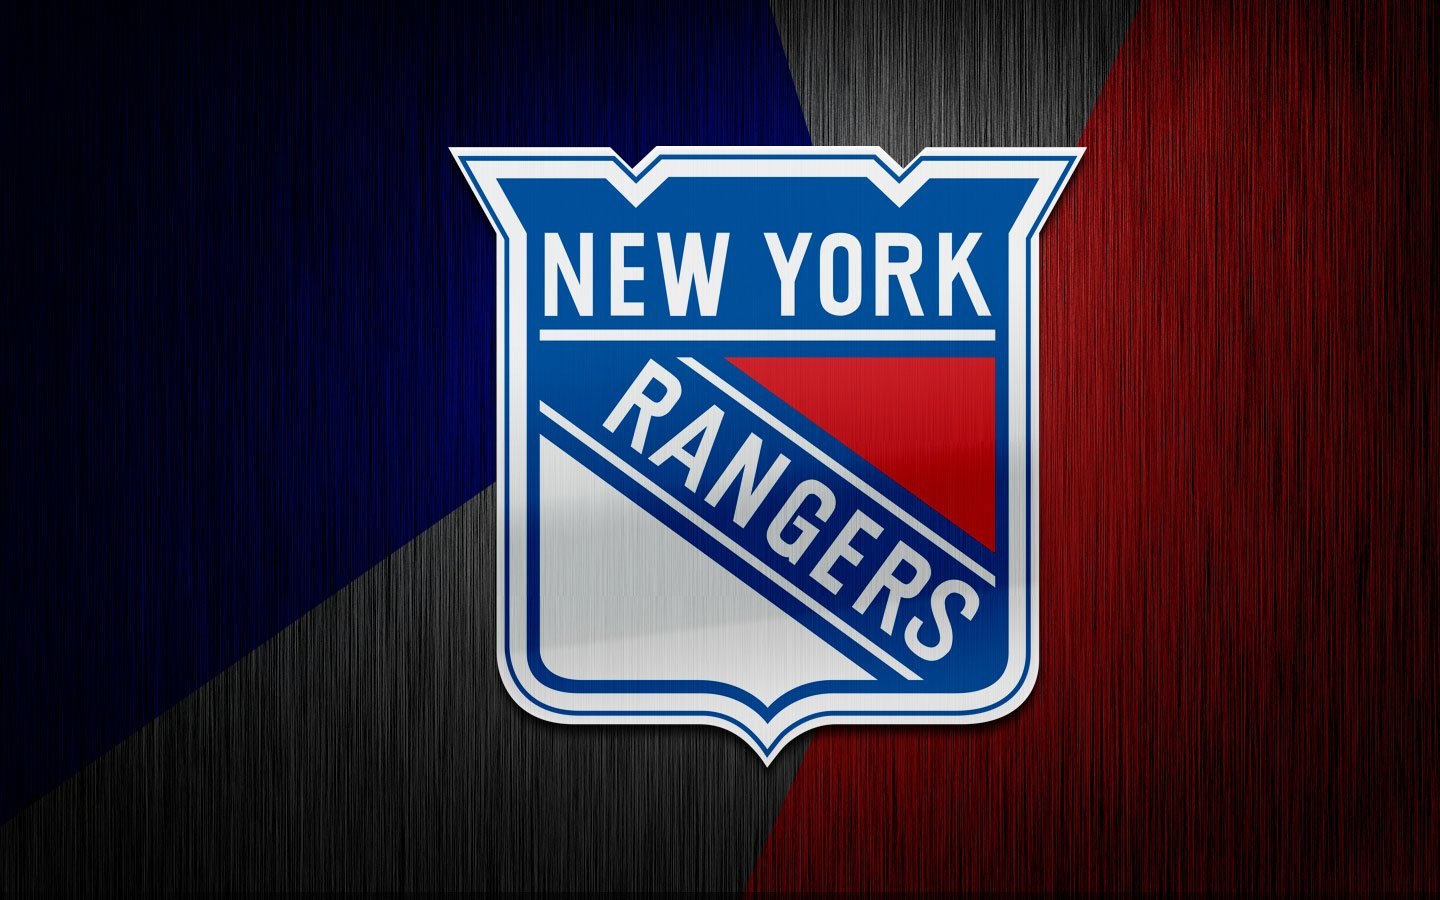 Free Download Ny Rangers Logo New York Rangers Blog 1440x900 For